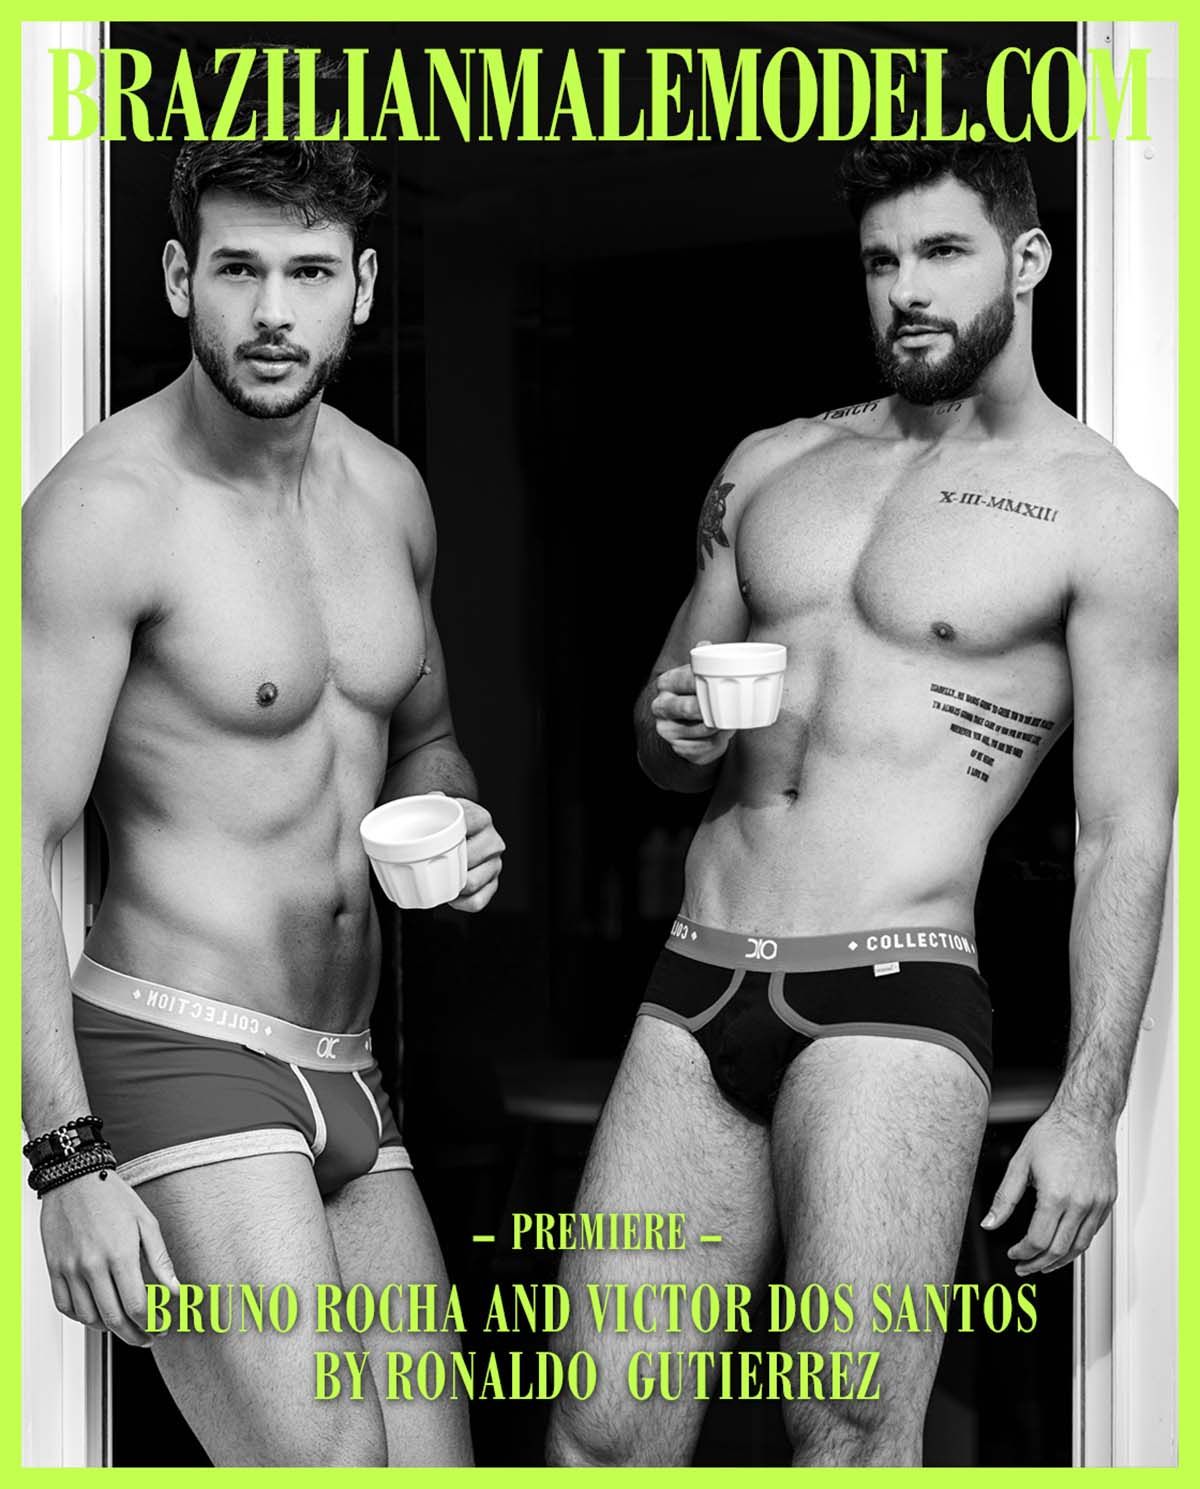 Bruno Rocha and Victor Dos Santos X Ronaldo Gutierrez X Brazilian Male Model X YUP MAGAZINE